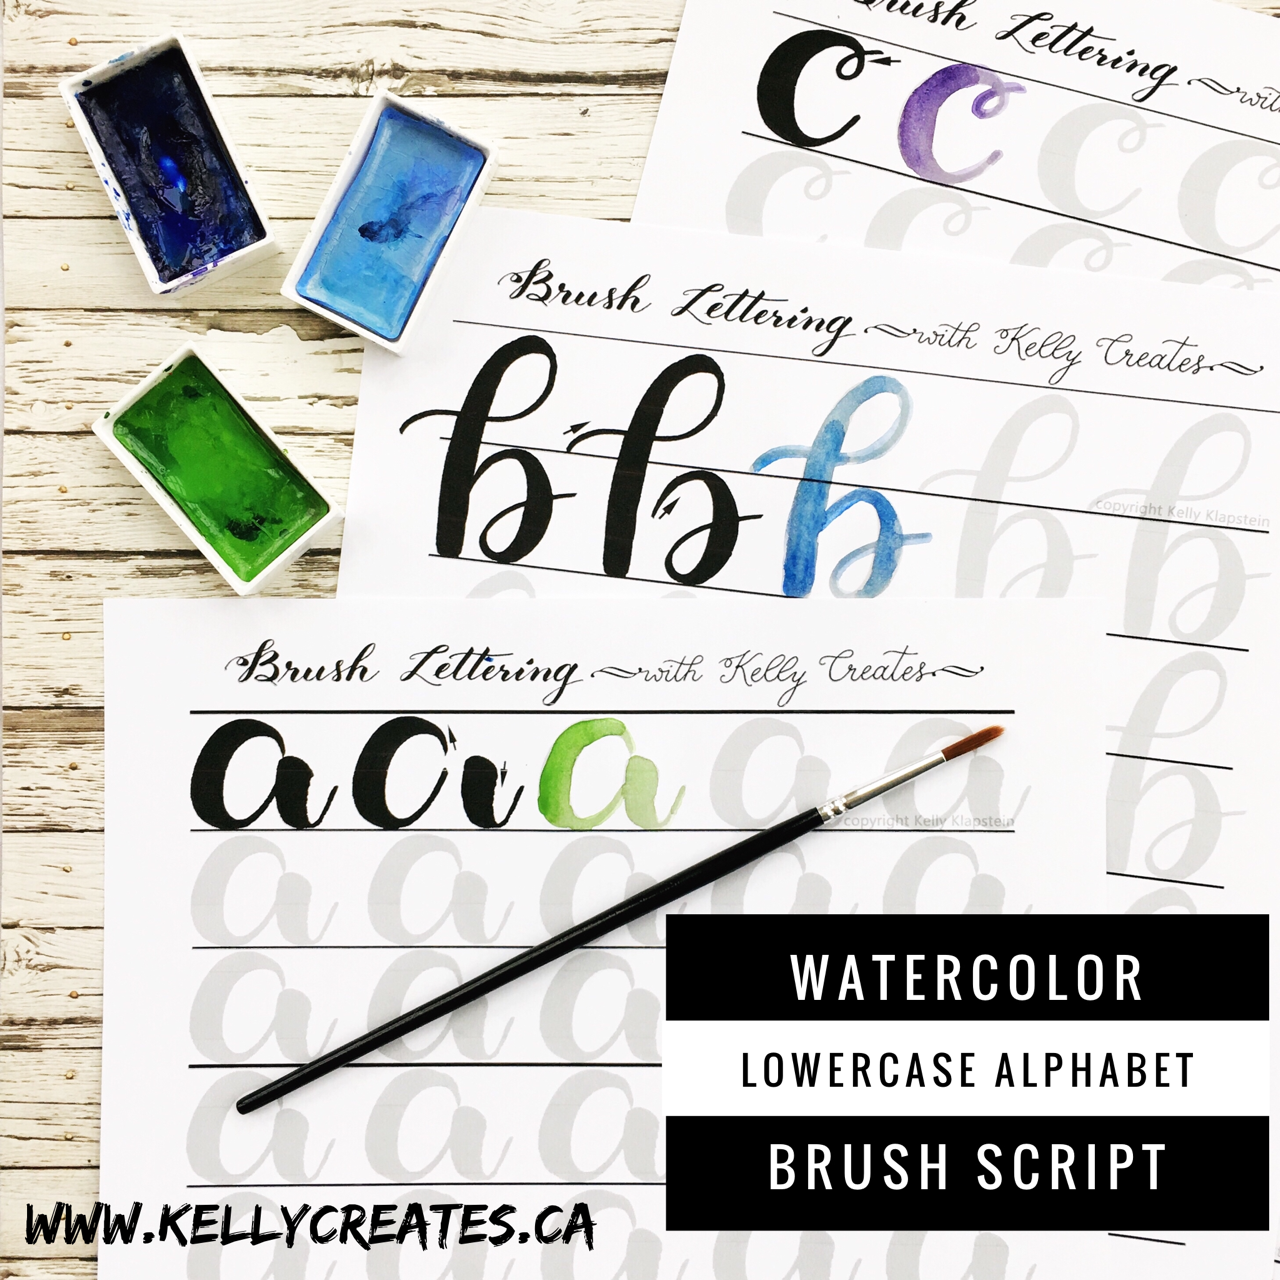 worksheet Tr 55 Worksheet watercolor brush lettering worksheets have arrived kelly creates kellycreates calligraphy brushlettering paint painting script